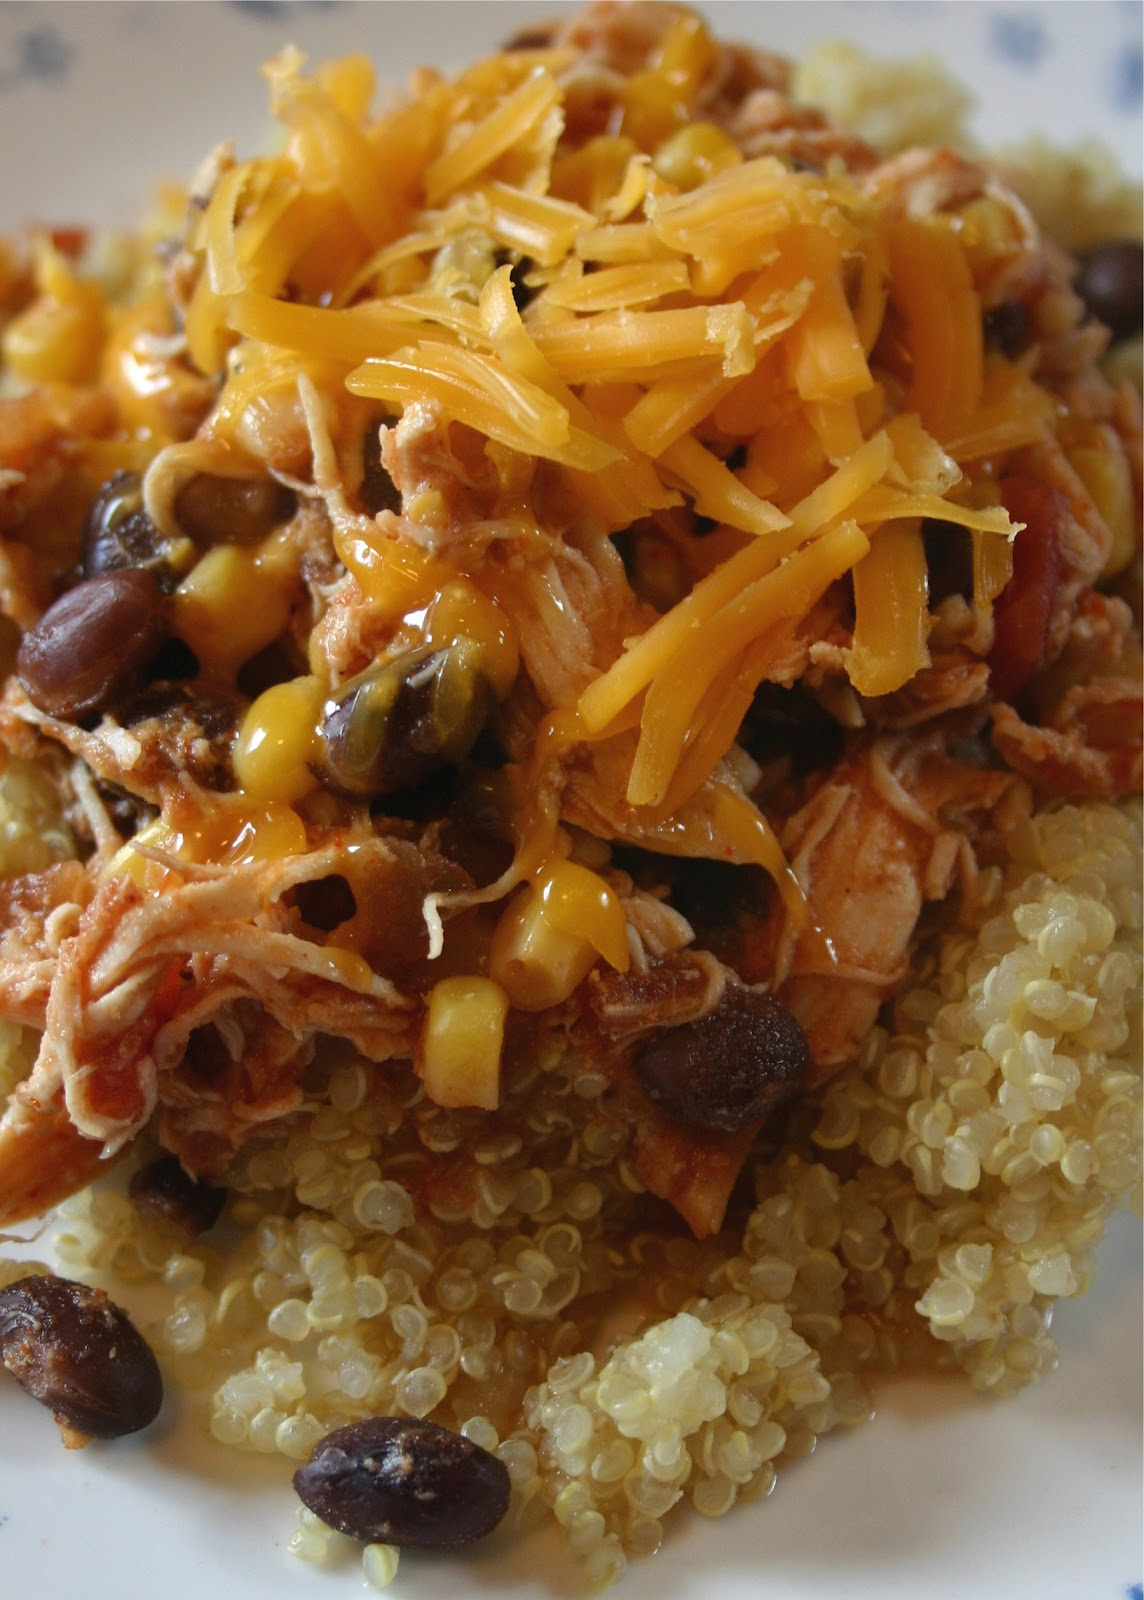 Jo and Sue: Southwest Shredded Chicken and Quinoa